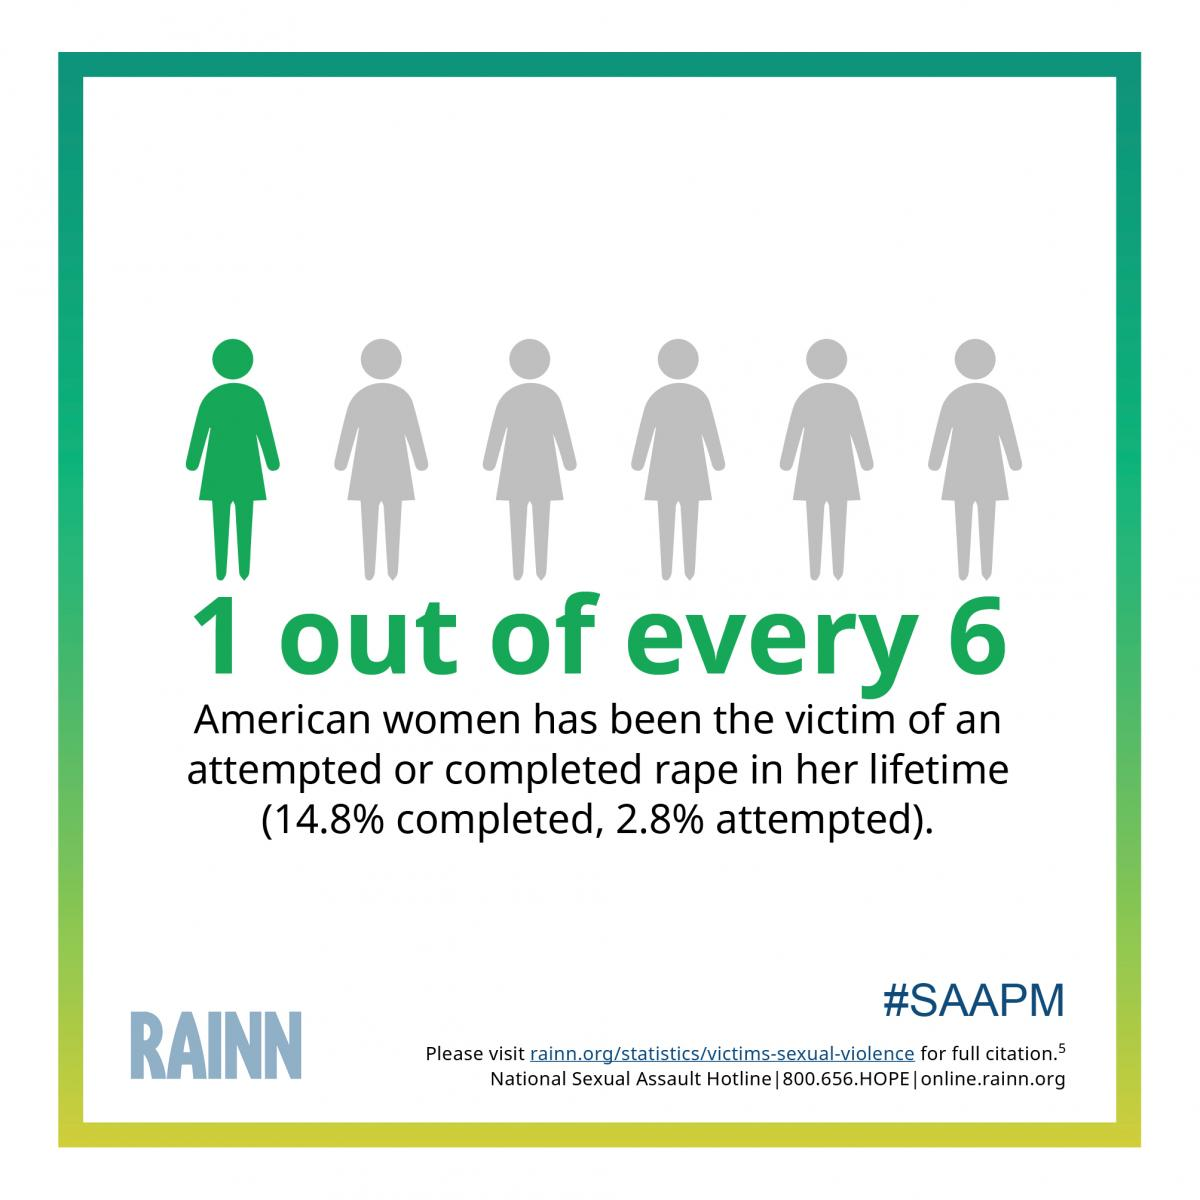 Instagram ready graphic stating: 1 out of every 6 American women has been the victim of an attempted or completed rape in her lifetime (14.8% completed, 2.8% attempted)